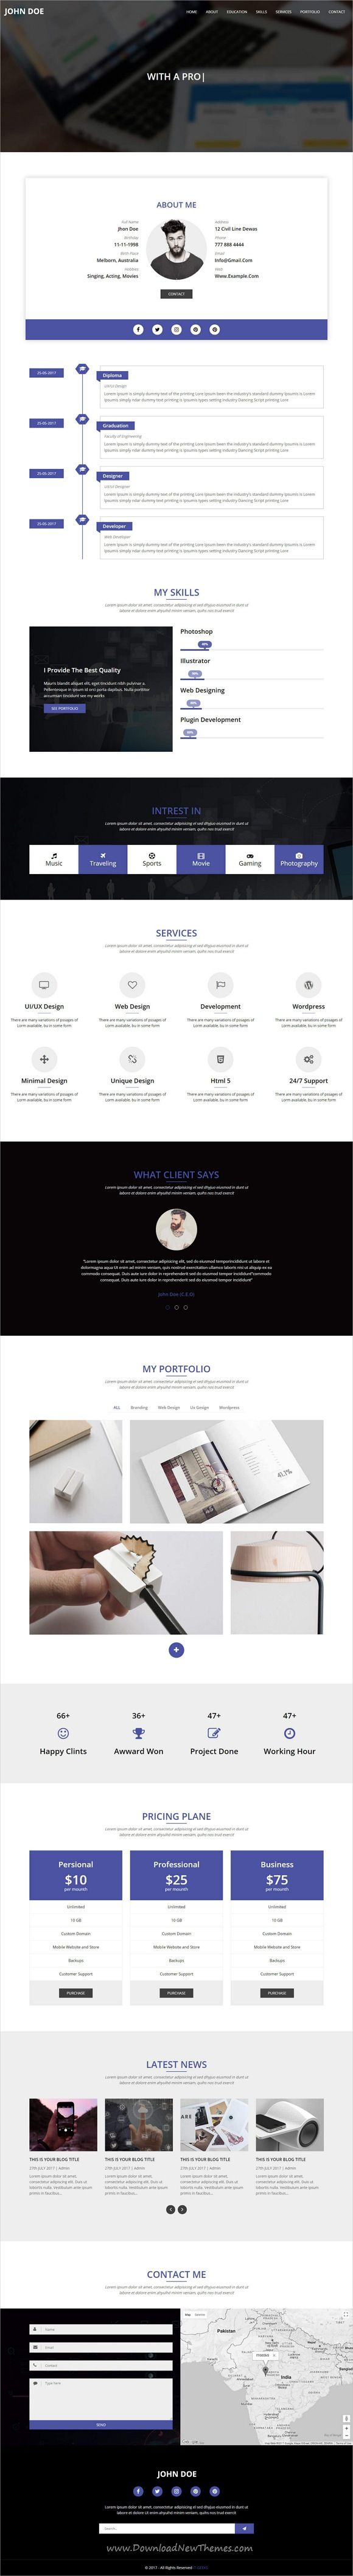 OnePager is clean and modern design multipurpose responsive #HTML template for #resume #CV and #portfolio showcase website with 21+ niche homepage layouts download now..